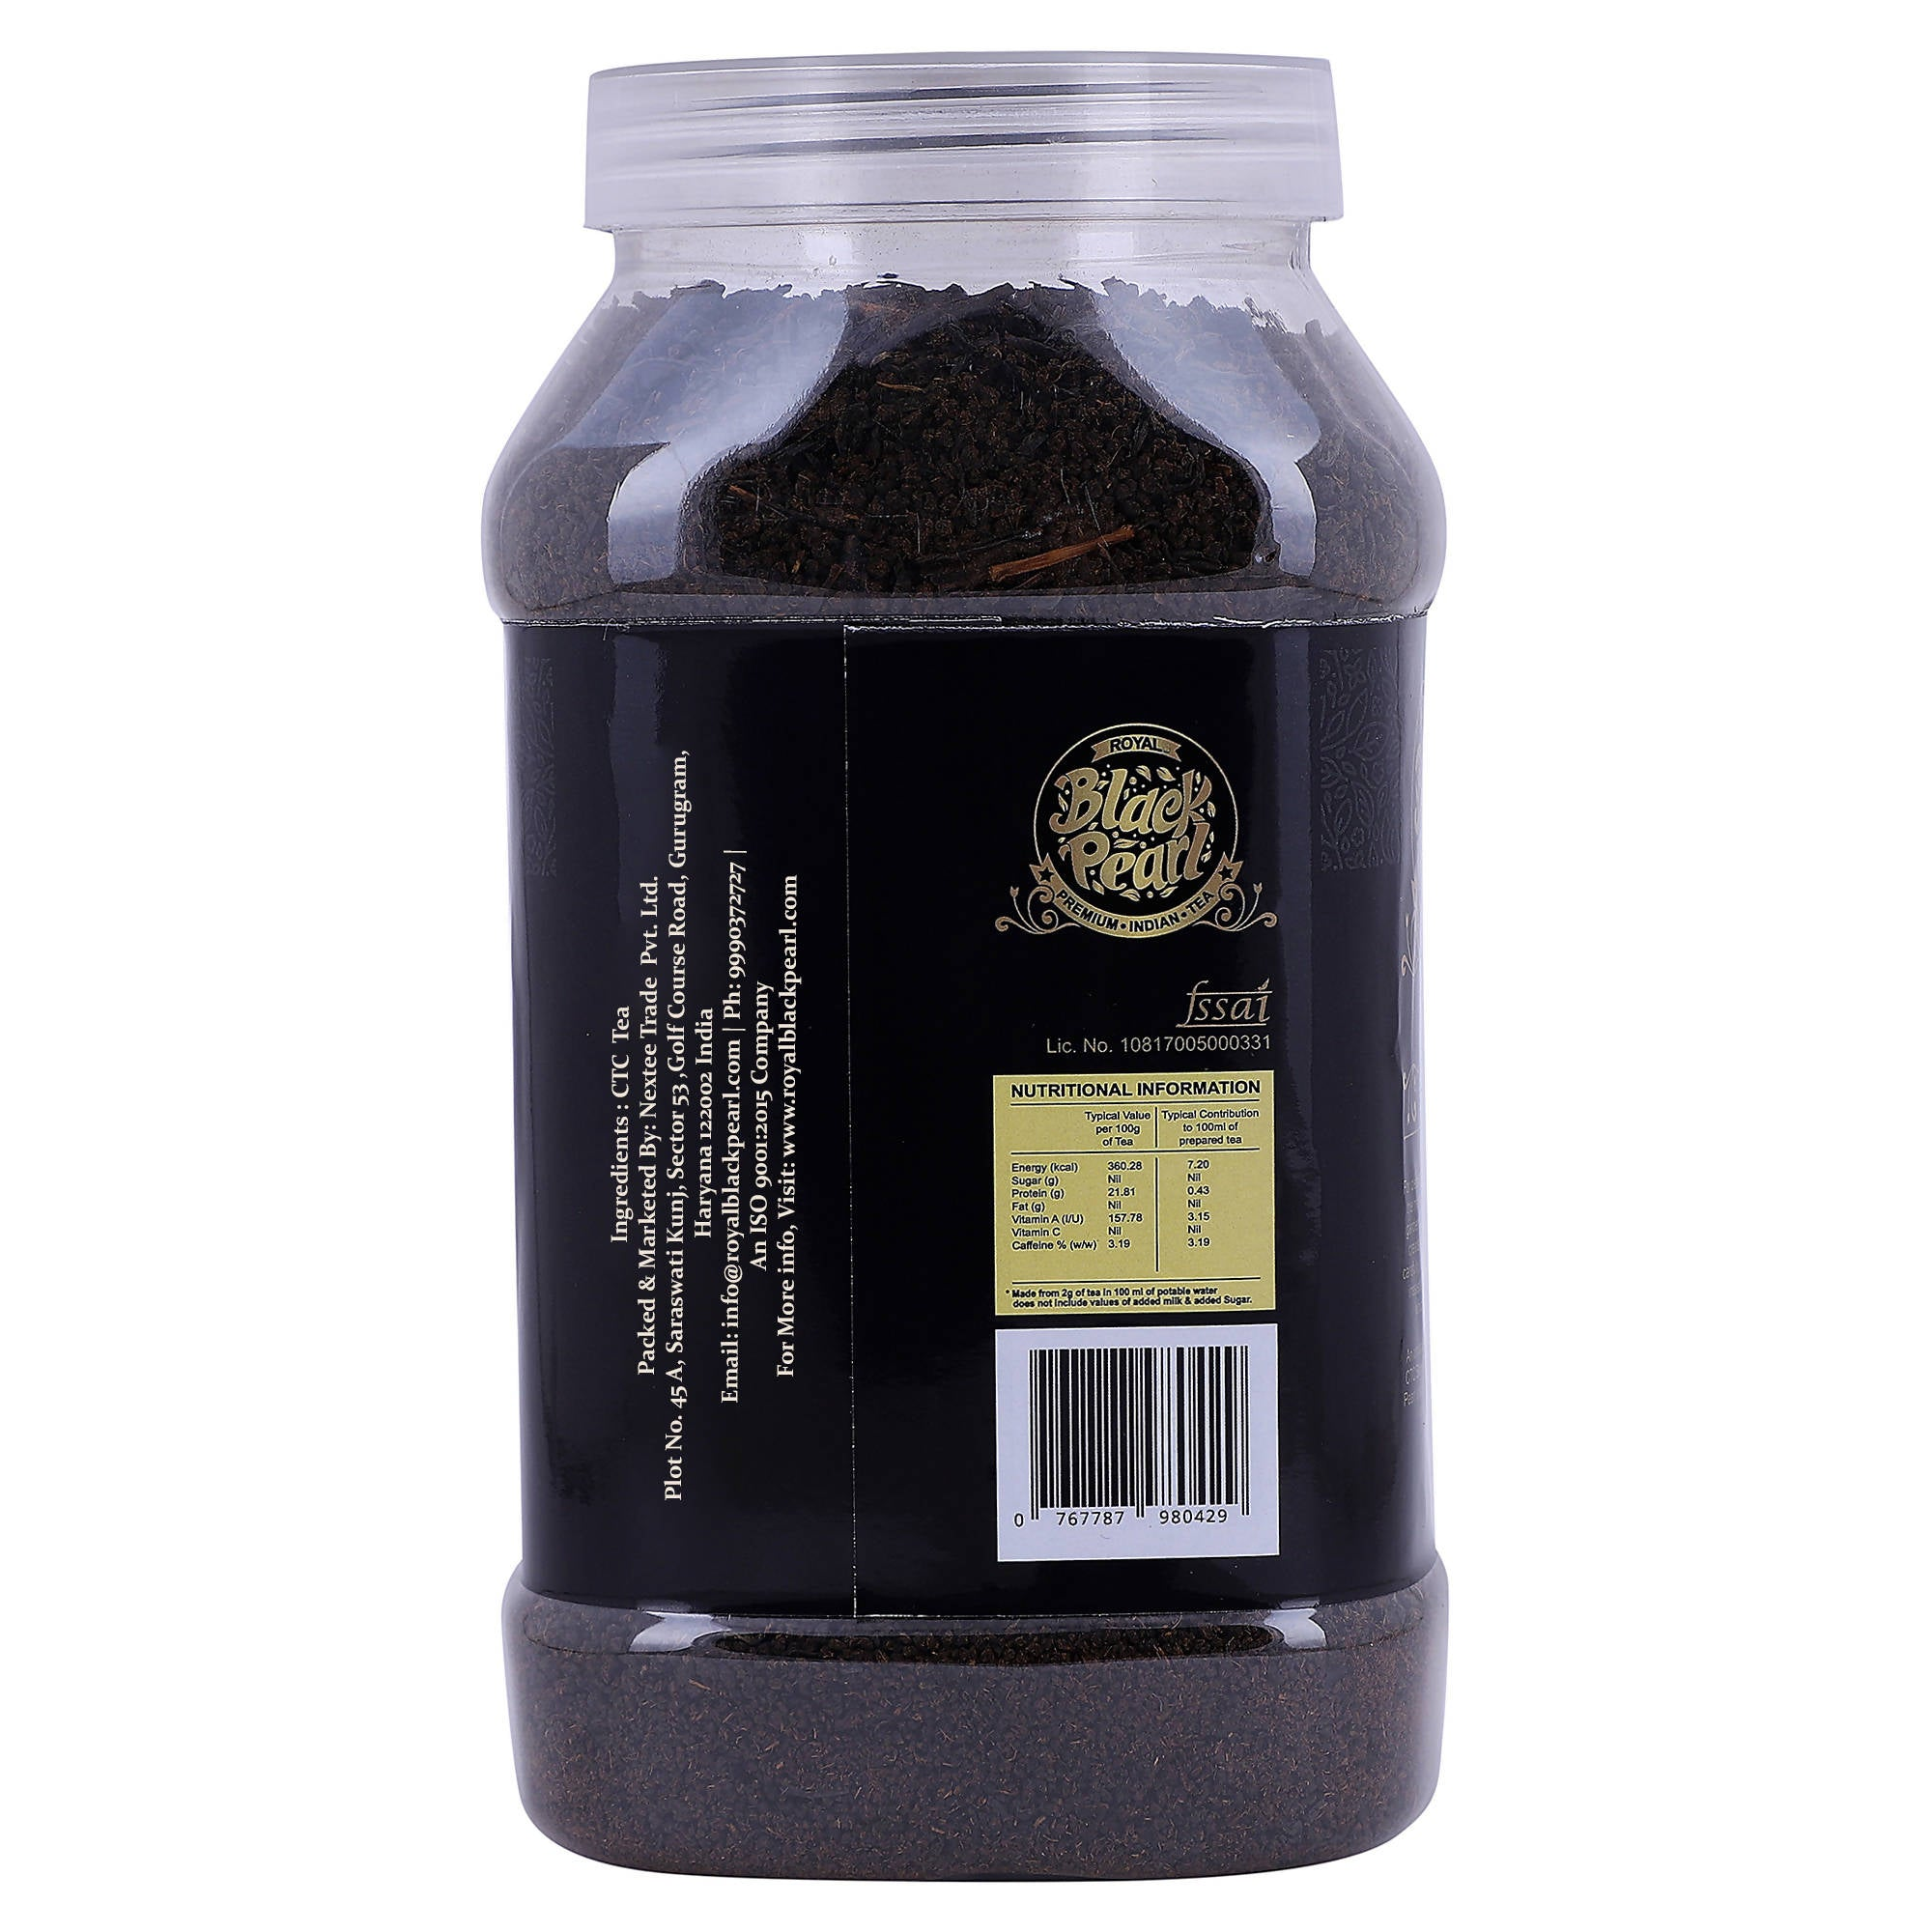 Royal Black Pearl Original Assam Black Tea Plastic Bottle (500 g)